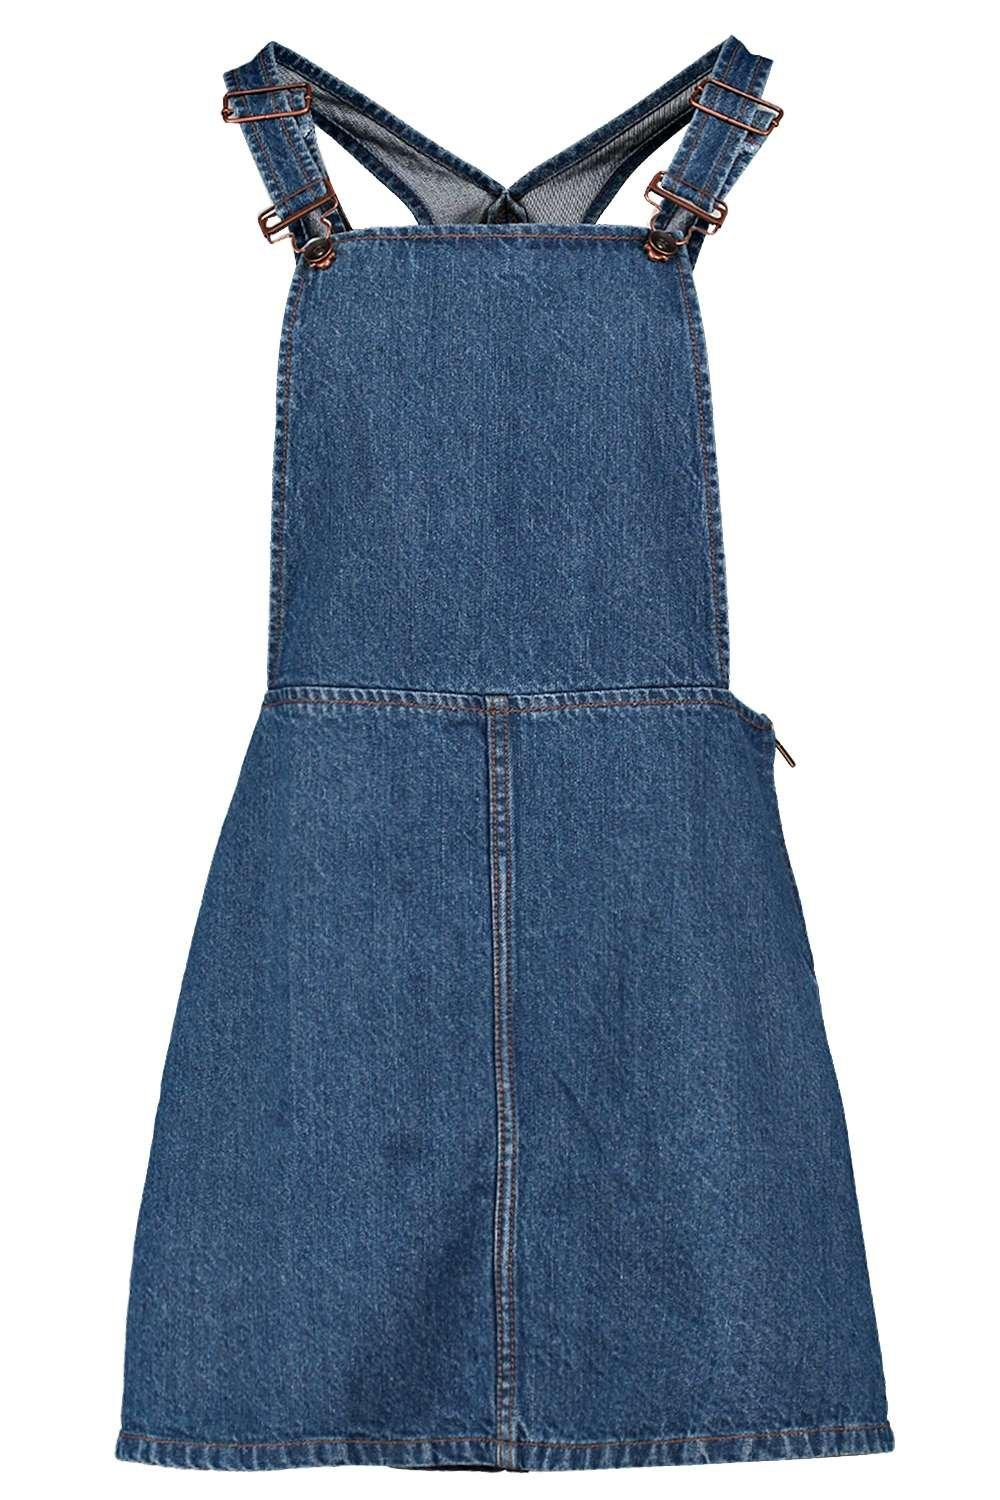 Wonderful Garage Denim Pinafore Style Dress These Are Cute With A Short Or Long Sleeve Tee Underneath Domes At The Top And Each Side Of The Skirt Theres Also A Large Pocket On The Chest 86cm Long Top Of Strap To Hem New Orig $35 Im Doing